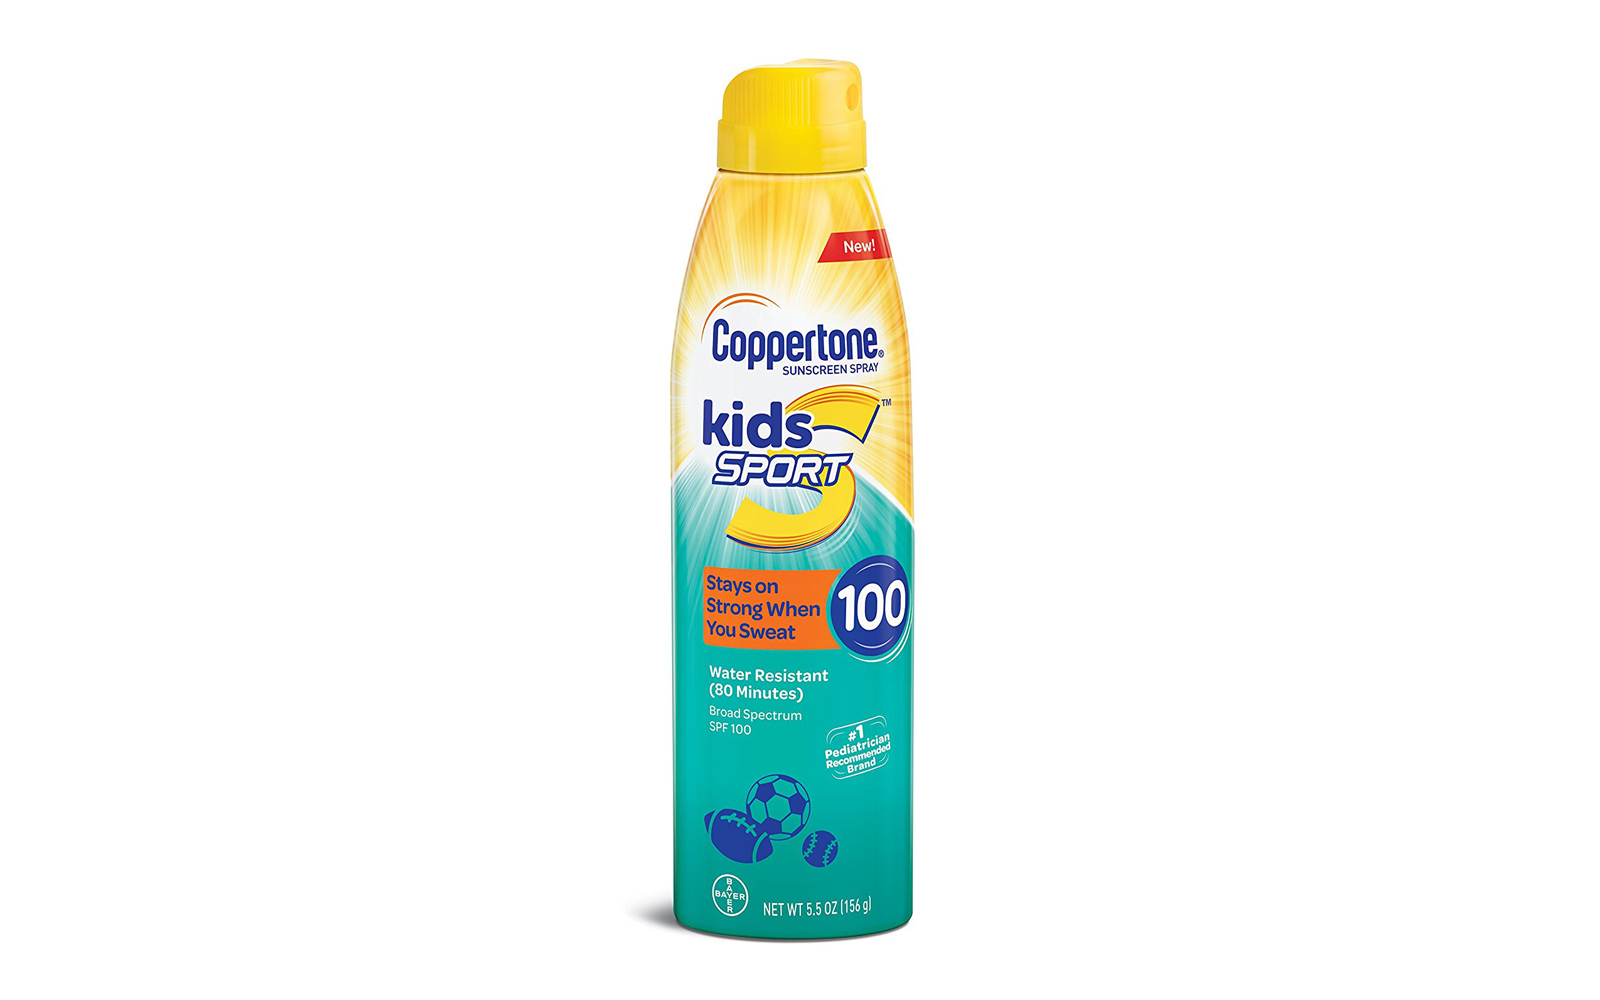 Coppertone Kids Sport SPF 100